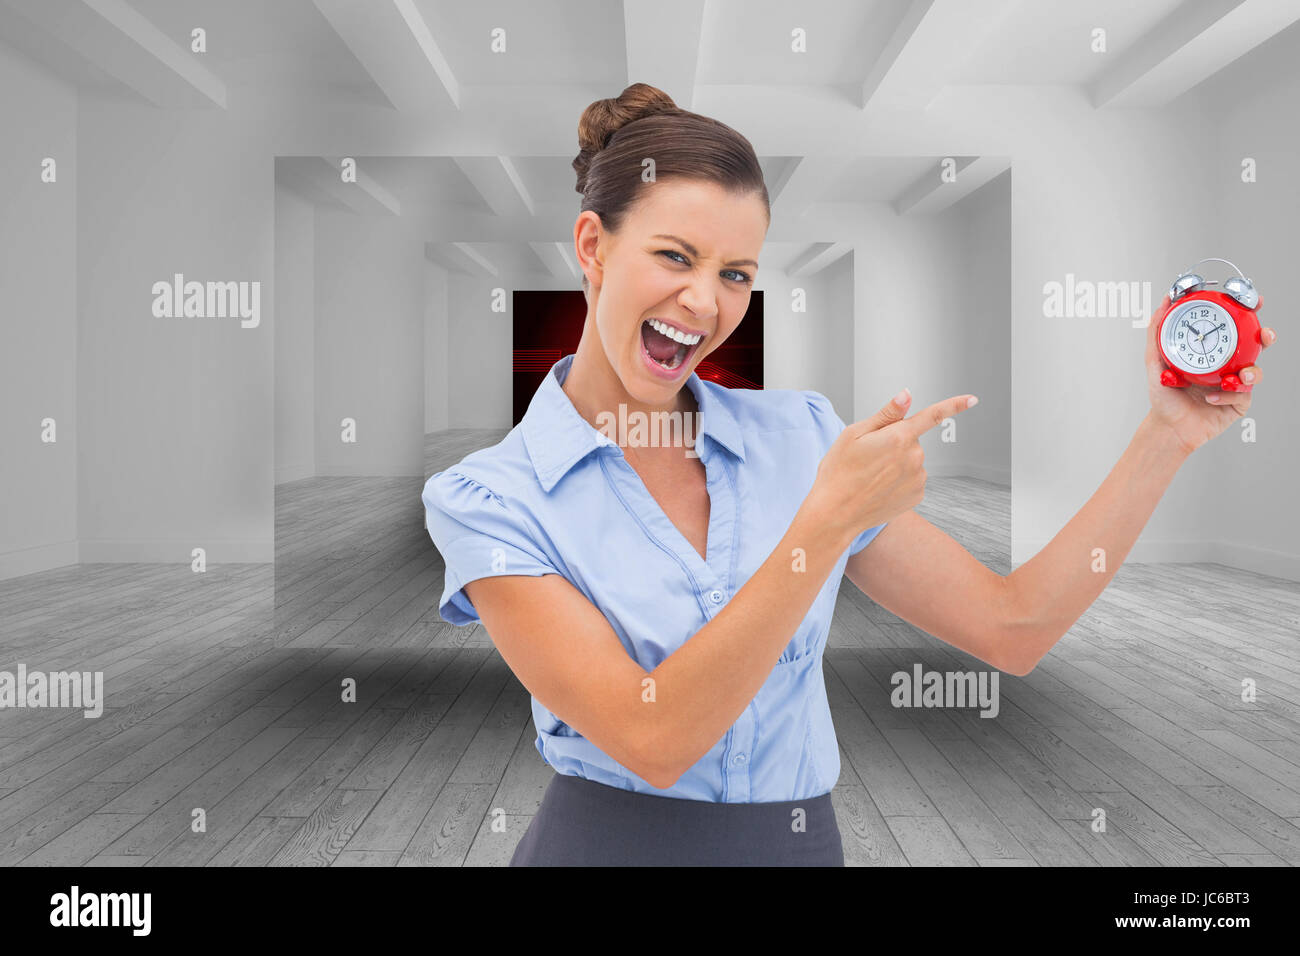 Composite image of businesswoman indicating alarm clock with finger - Stock Image